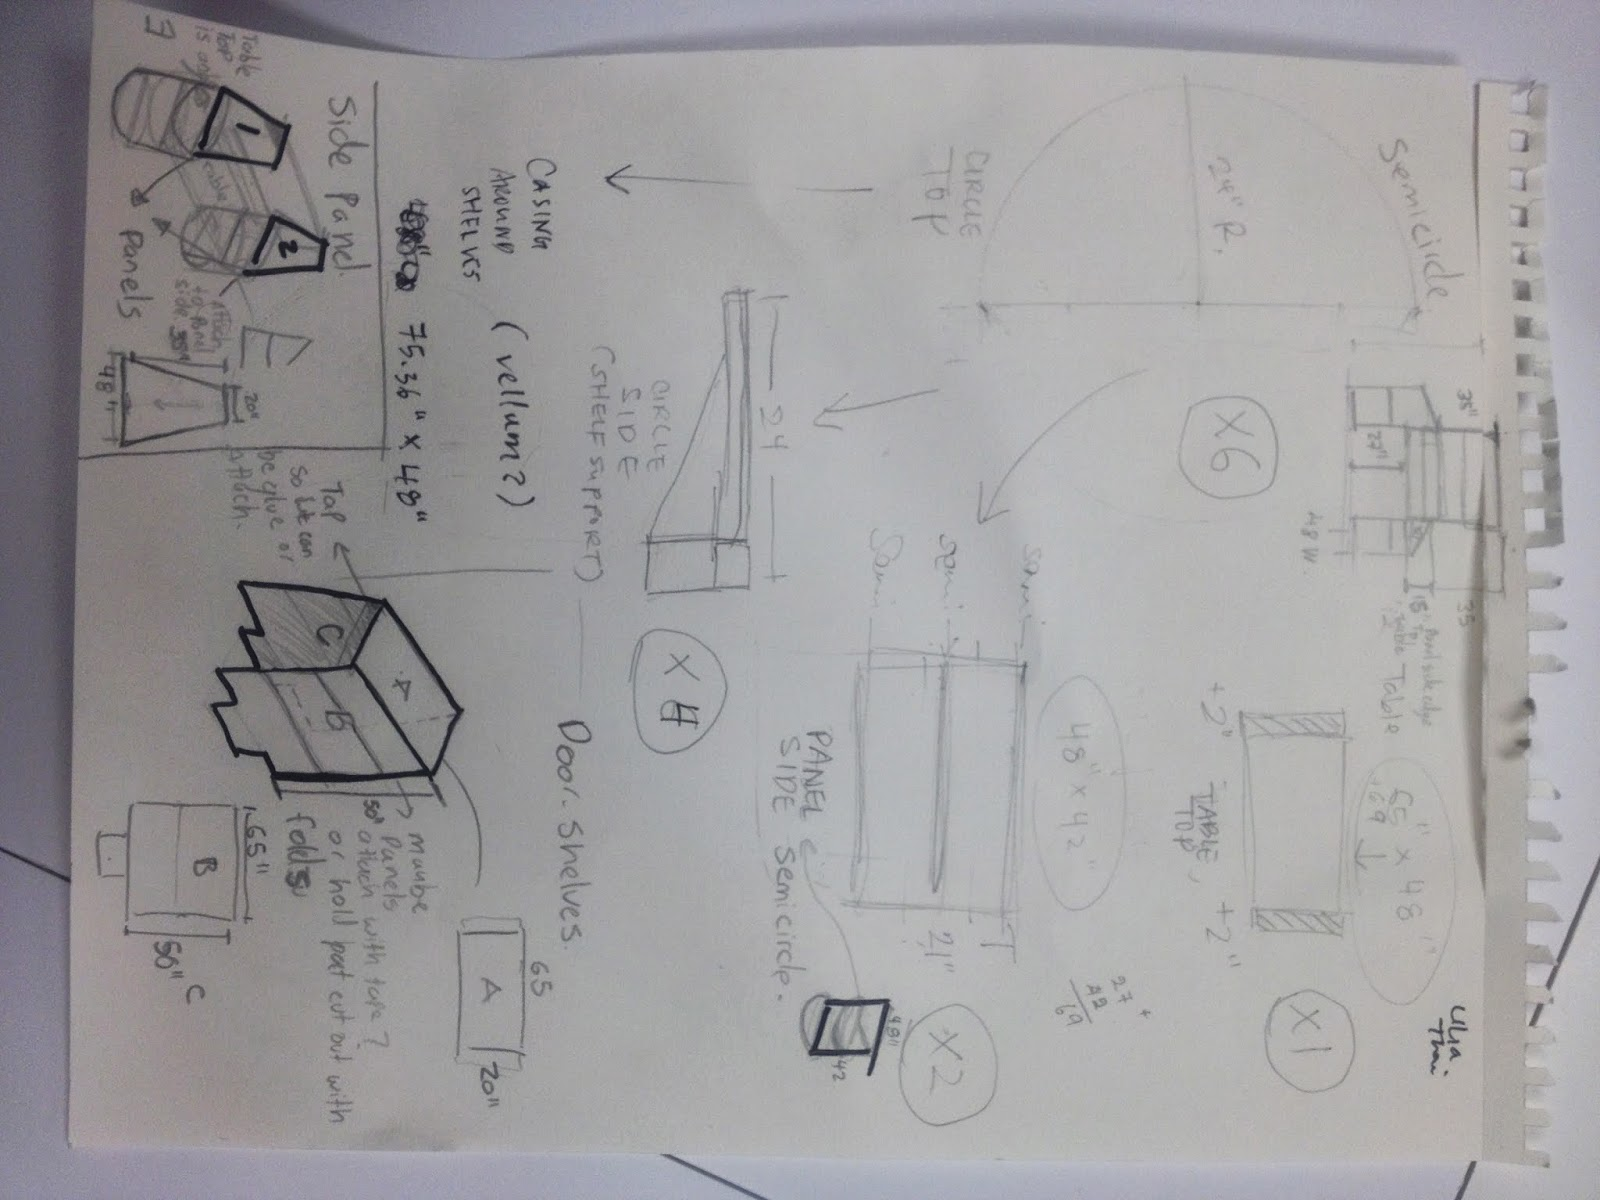 A page pinned to the wall filled with sketch ideas towards a model concept.